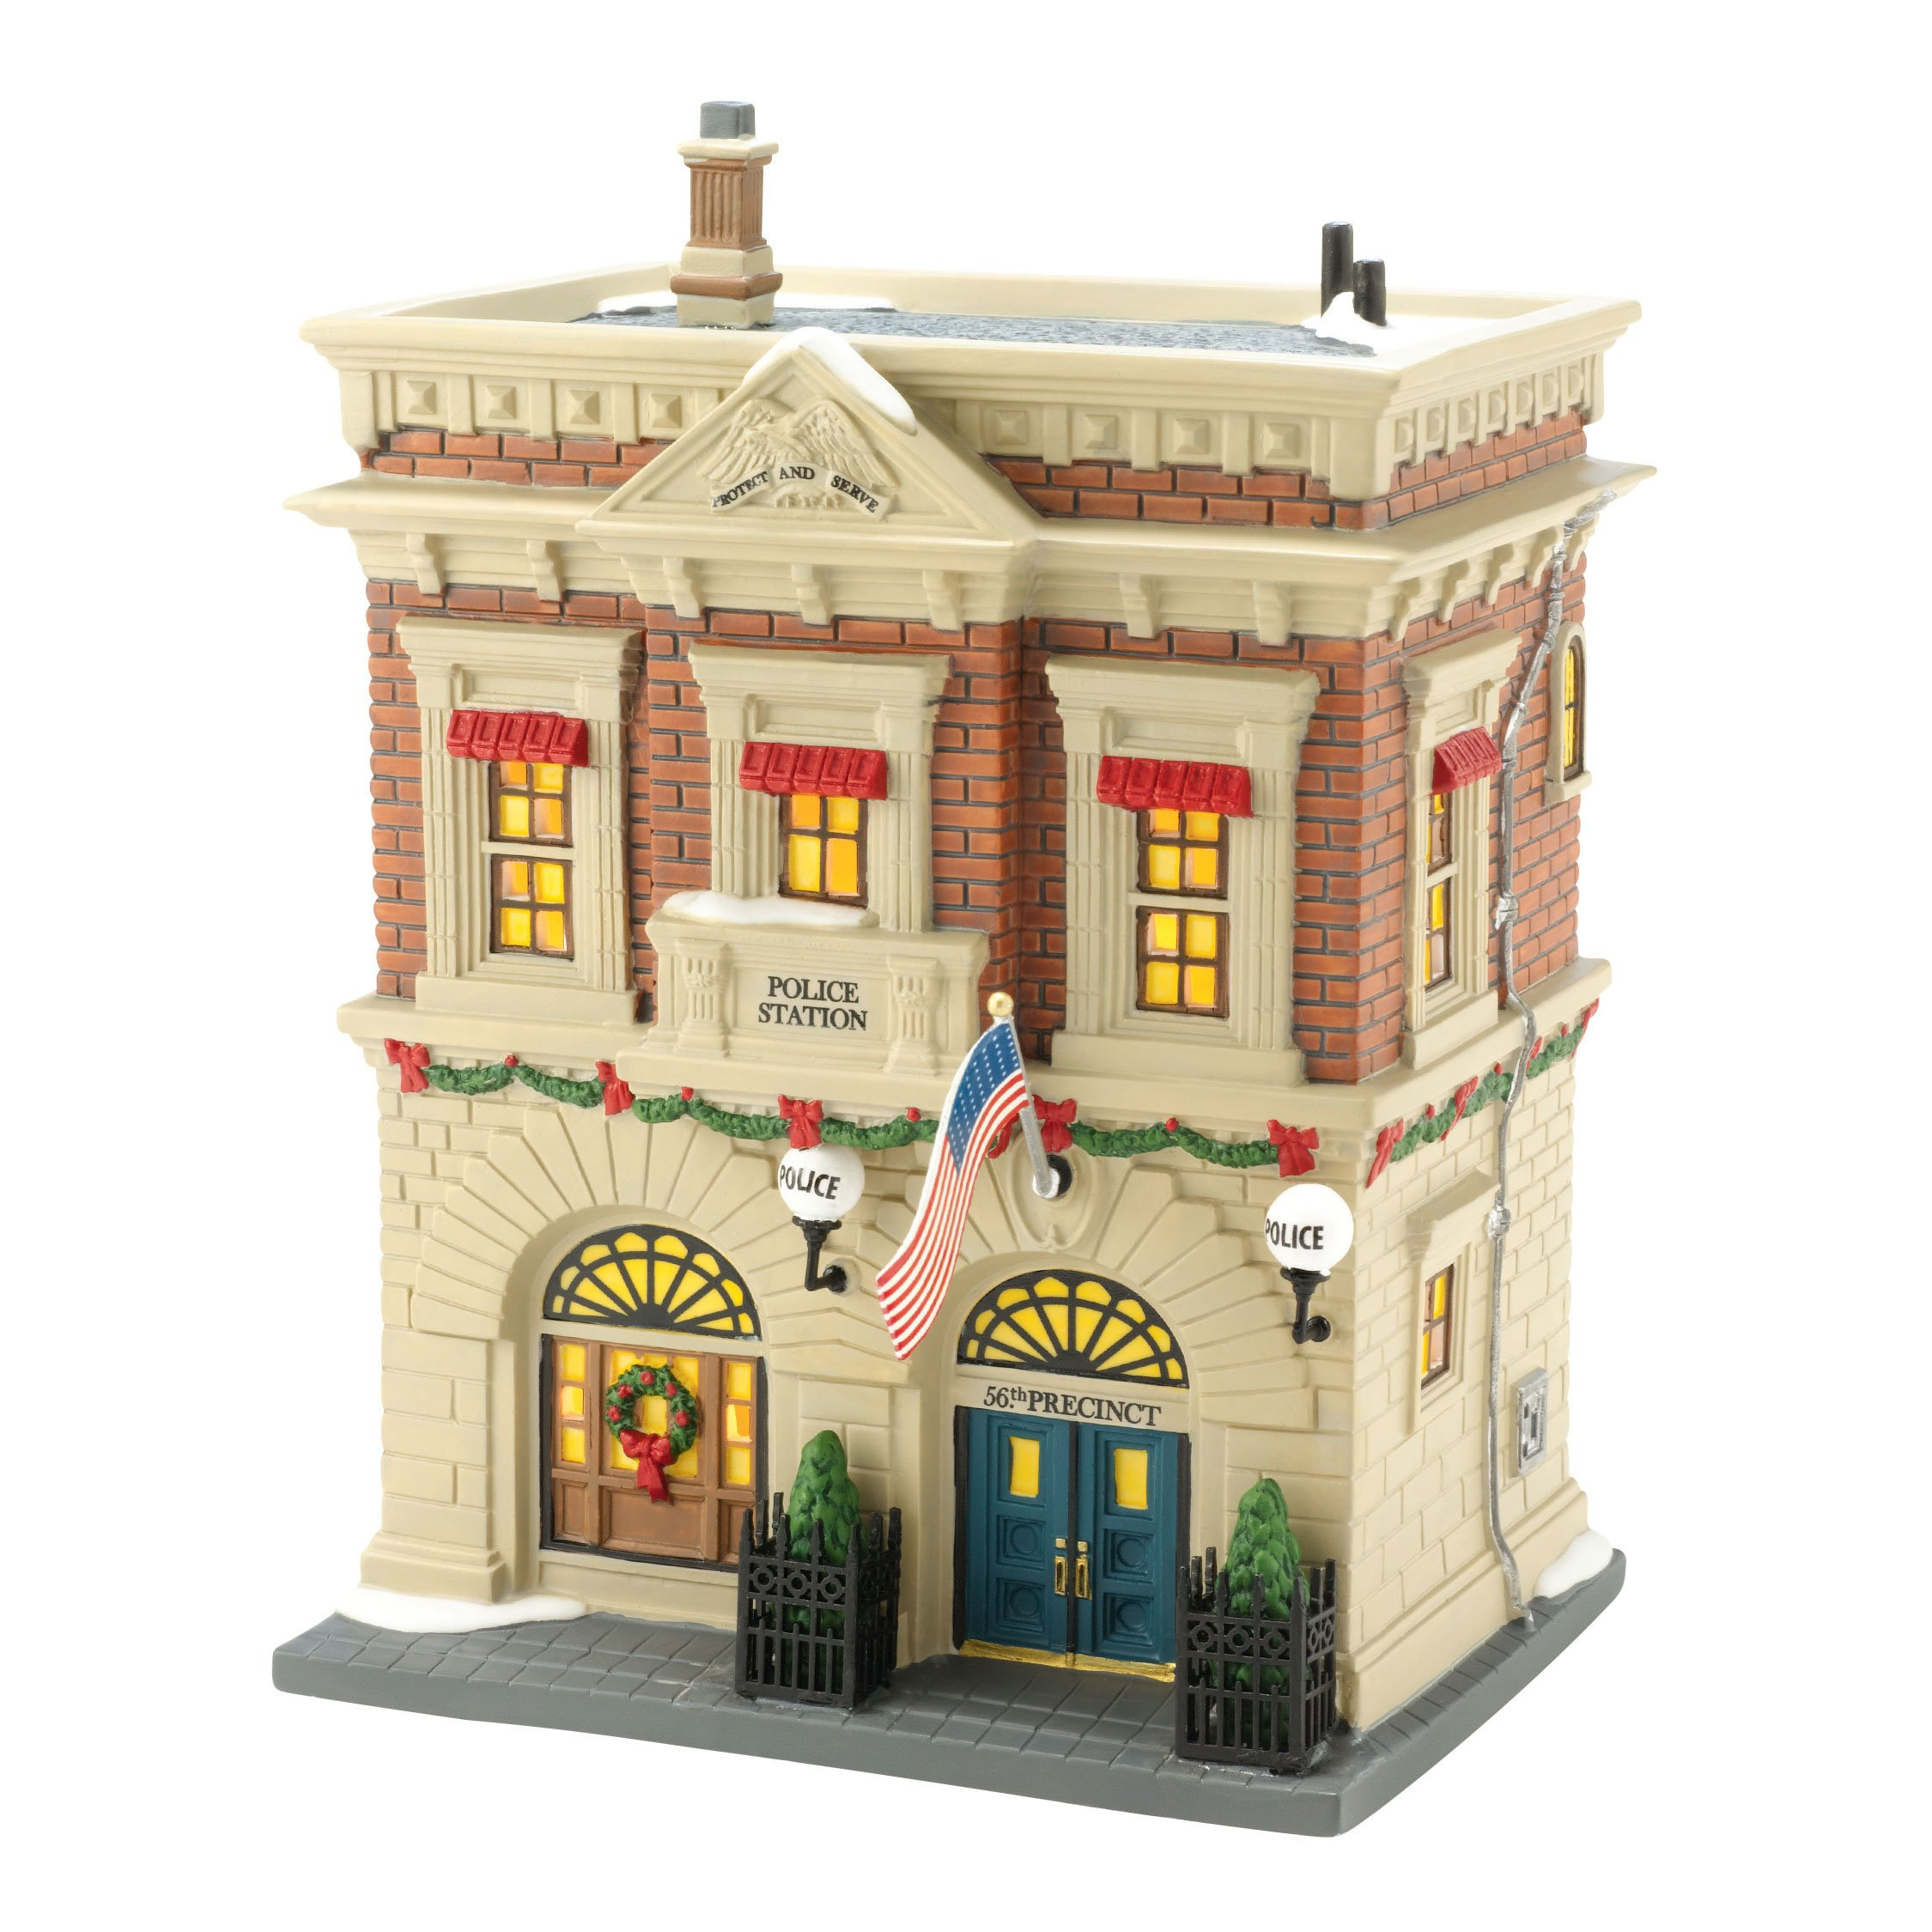 Department 56 Christmas in the City Village Precinct 56 Police Station Lit House, 8.27 inch